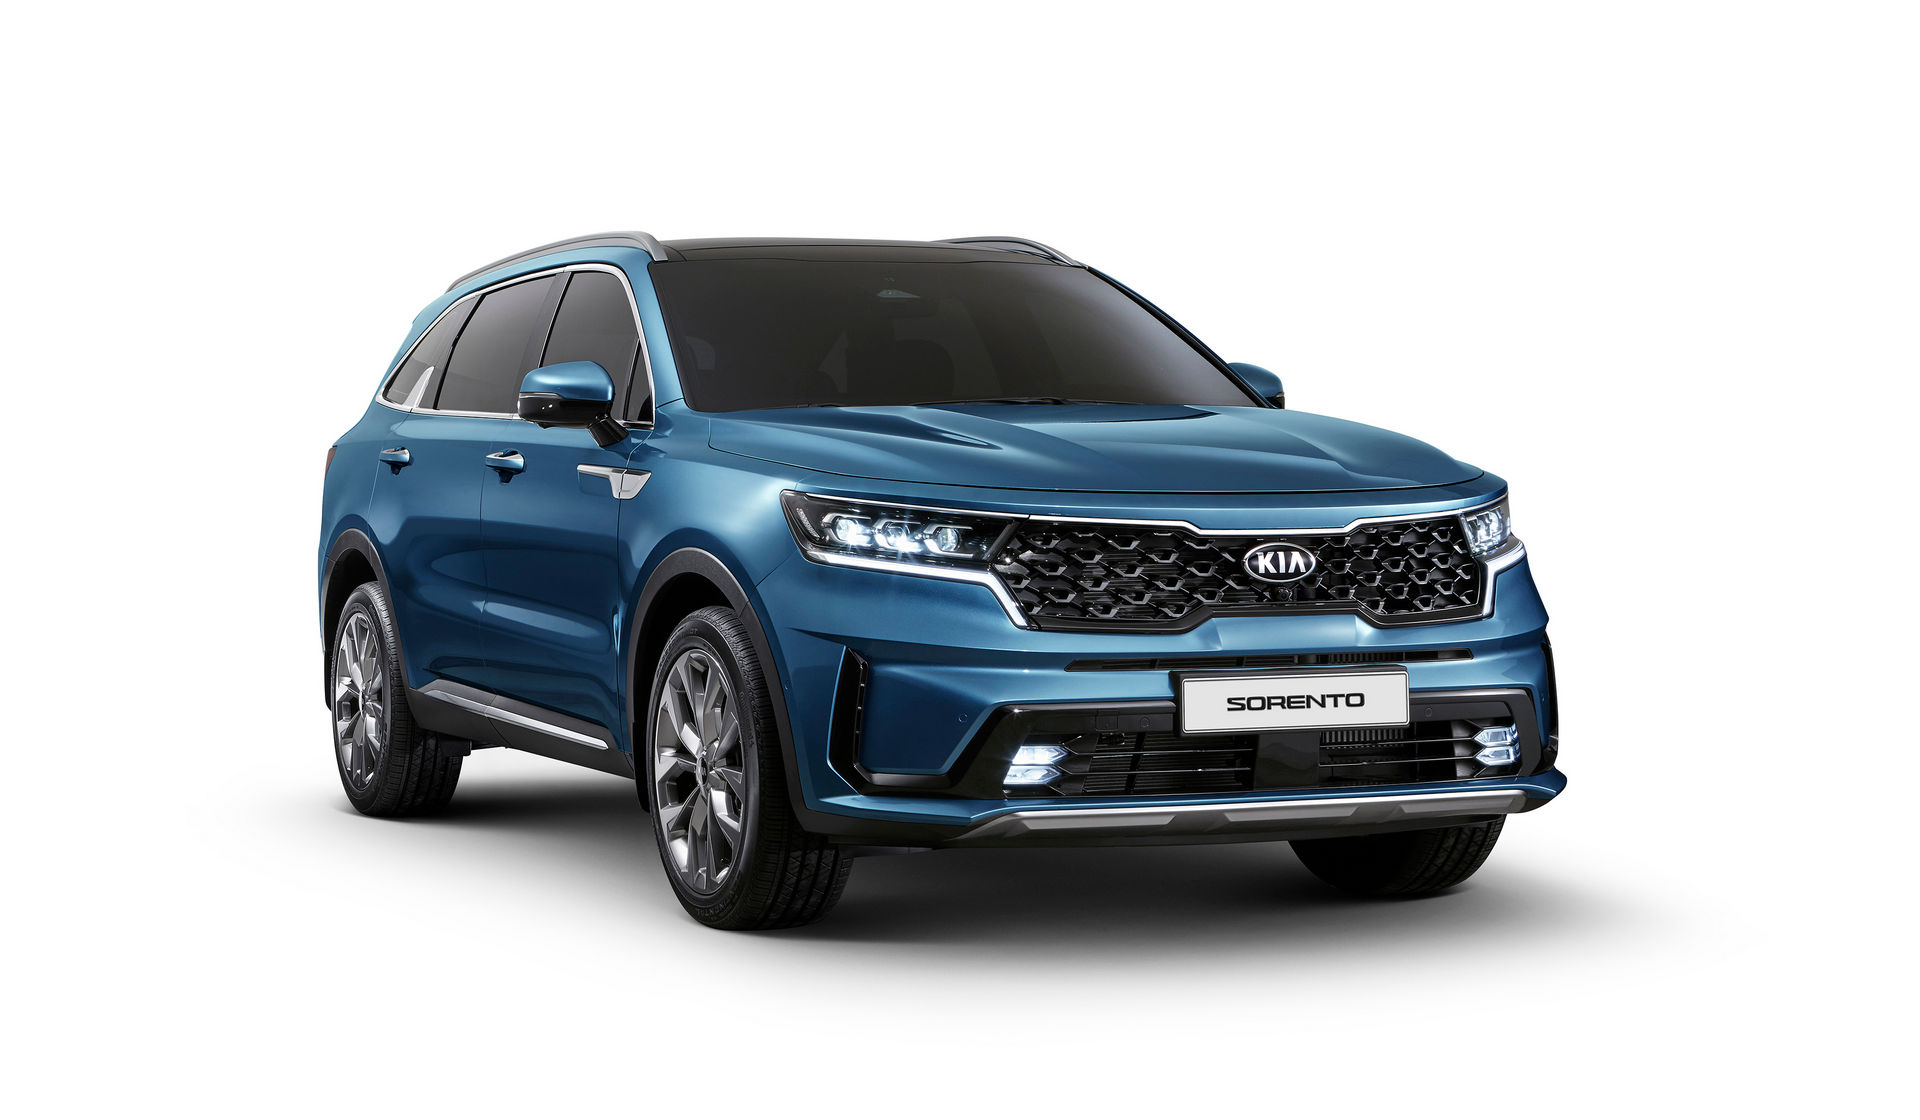 2021 Kia Sorento: Here Are The First Official Images And Details - 2022 Kia Soul 4Wd Release Date, Specification Rumor